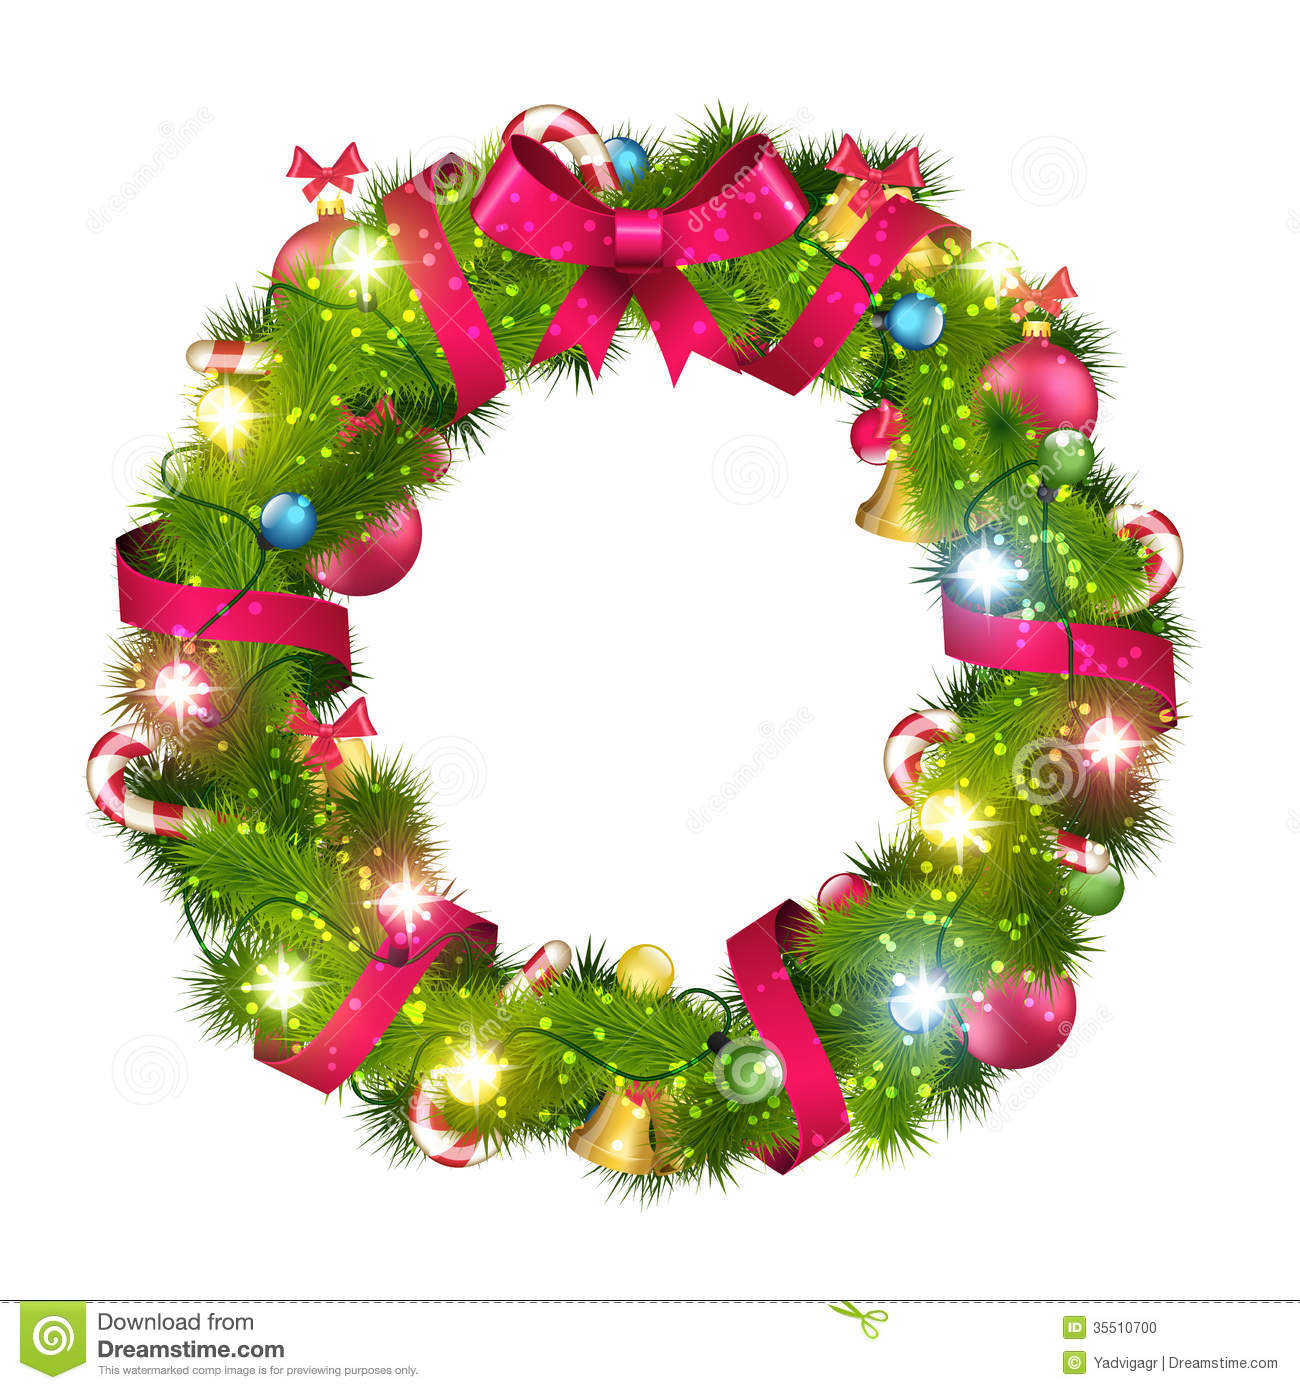 Christmas Wreath Vector.Christmas Wreath Stock Vector Illustration Of White 35510700